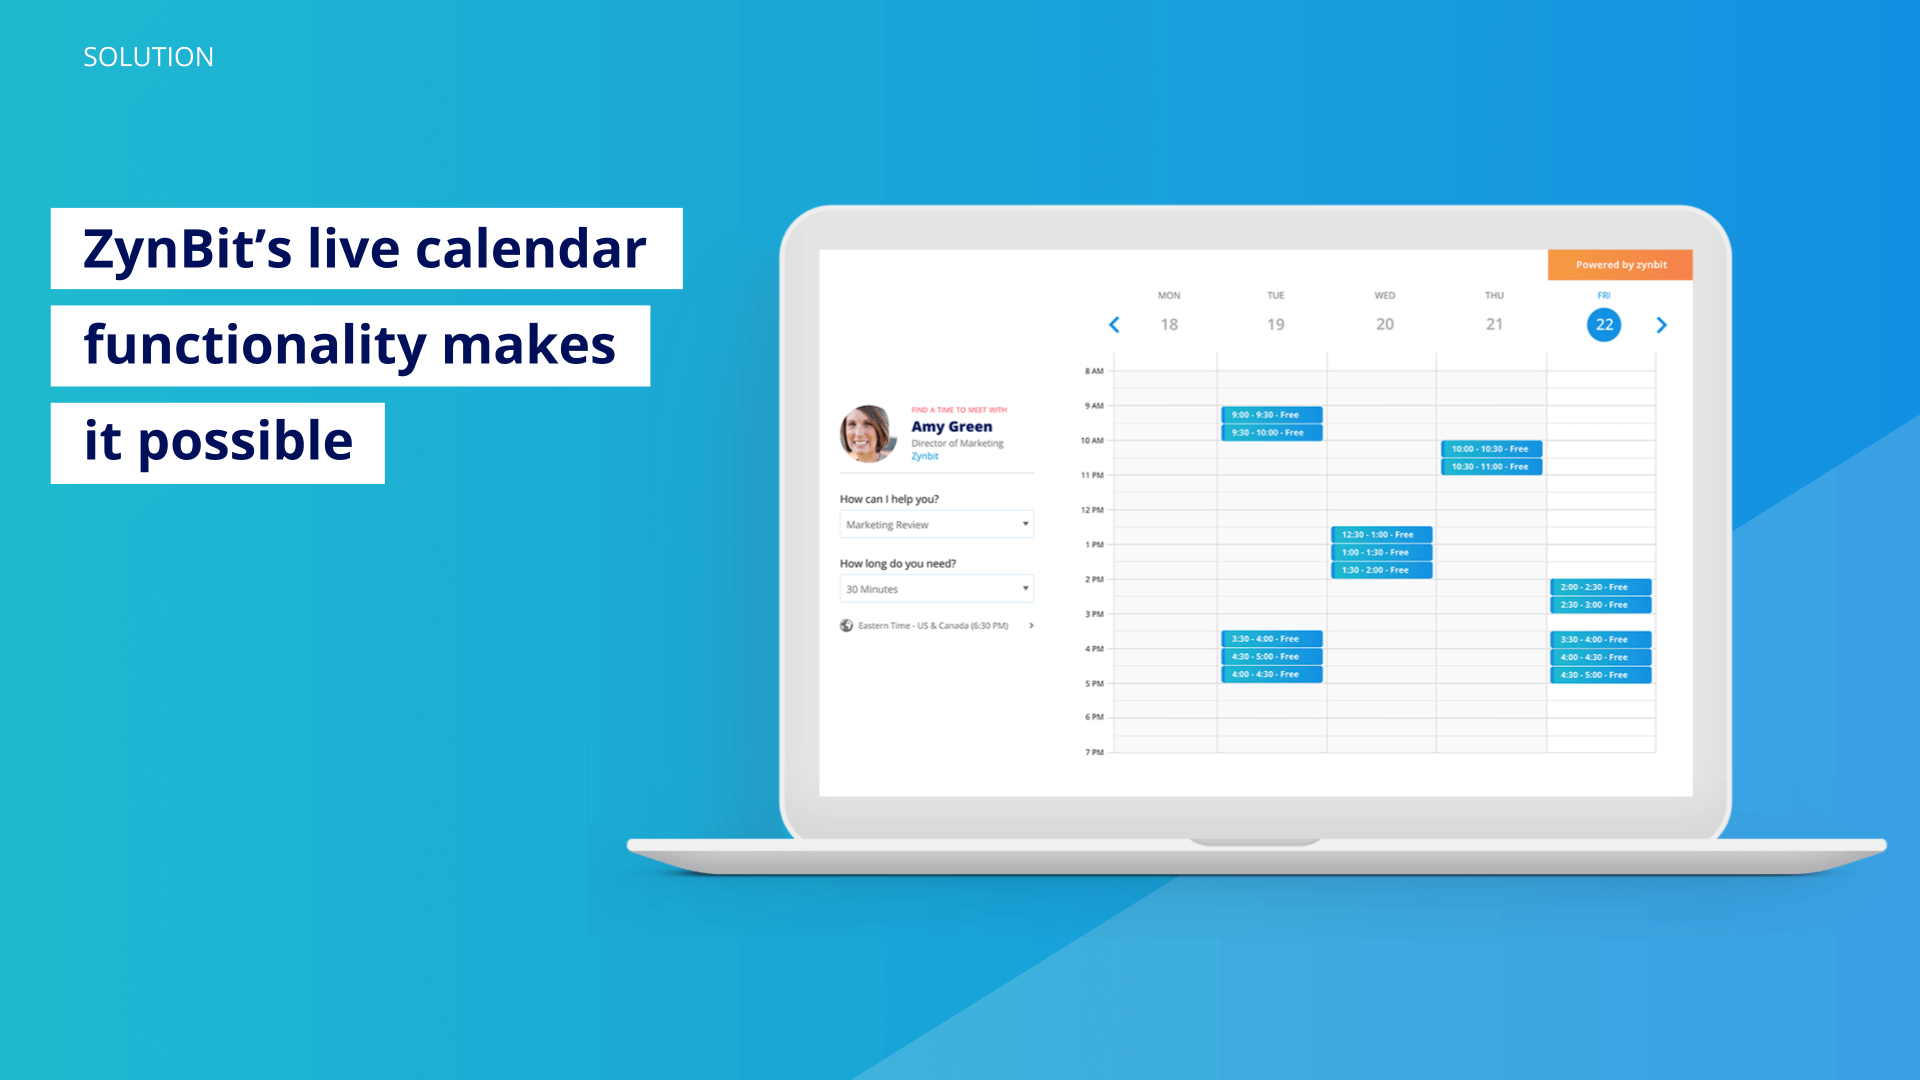 ZynBit's-live-calendar-functionality-makes-it-possible